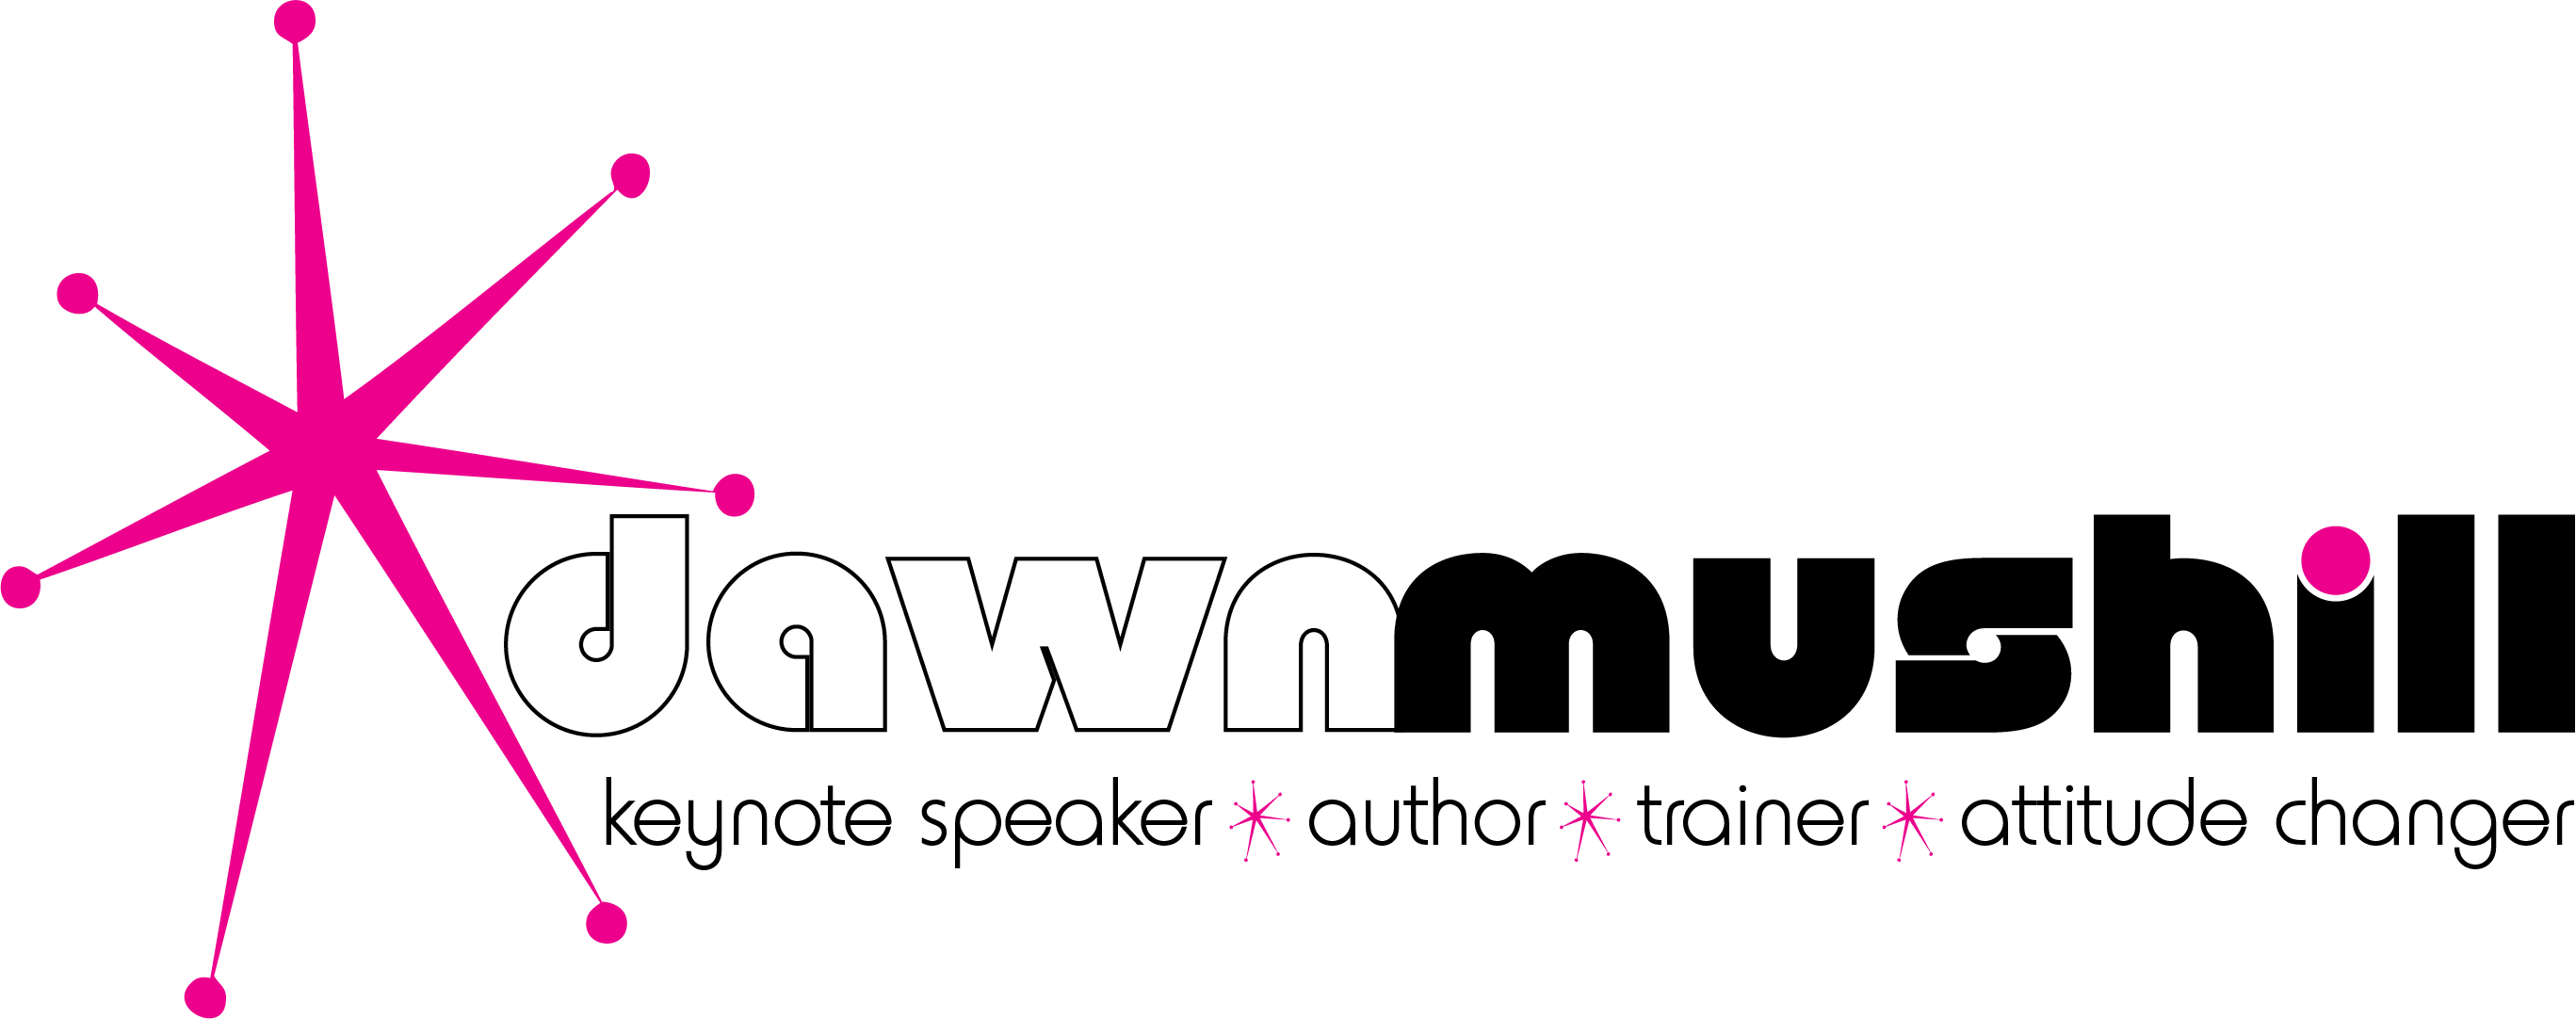 Dawn Mushill- Keynote Speaker, Author, Trainer, Attitude Changer